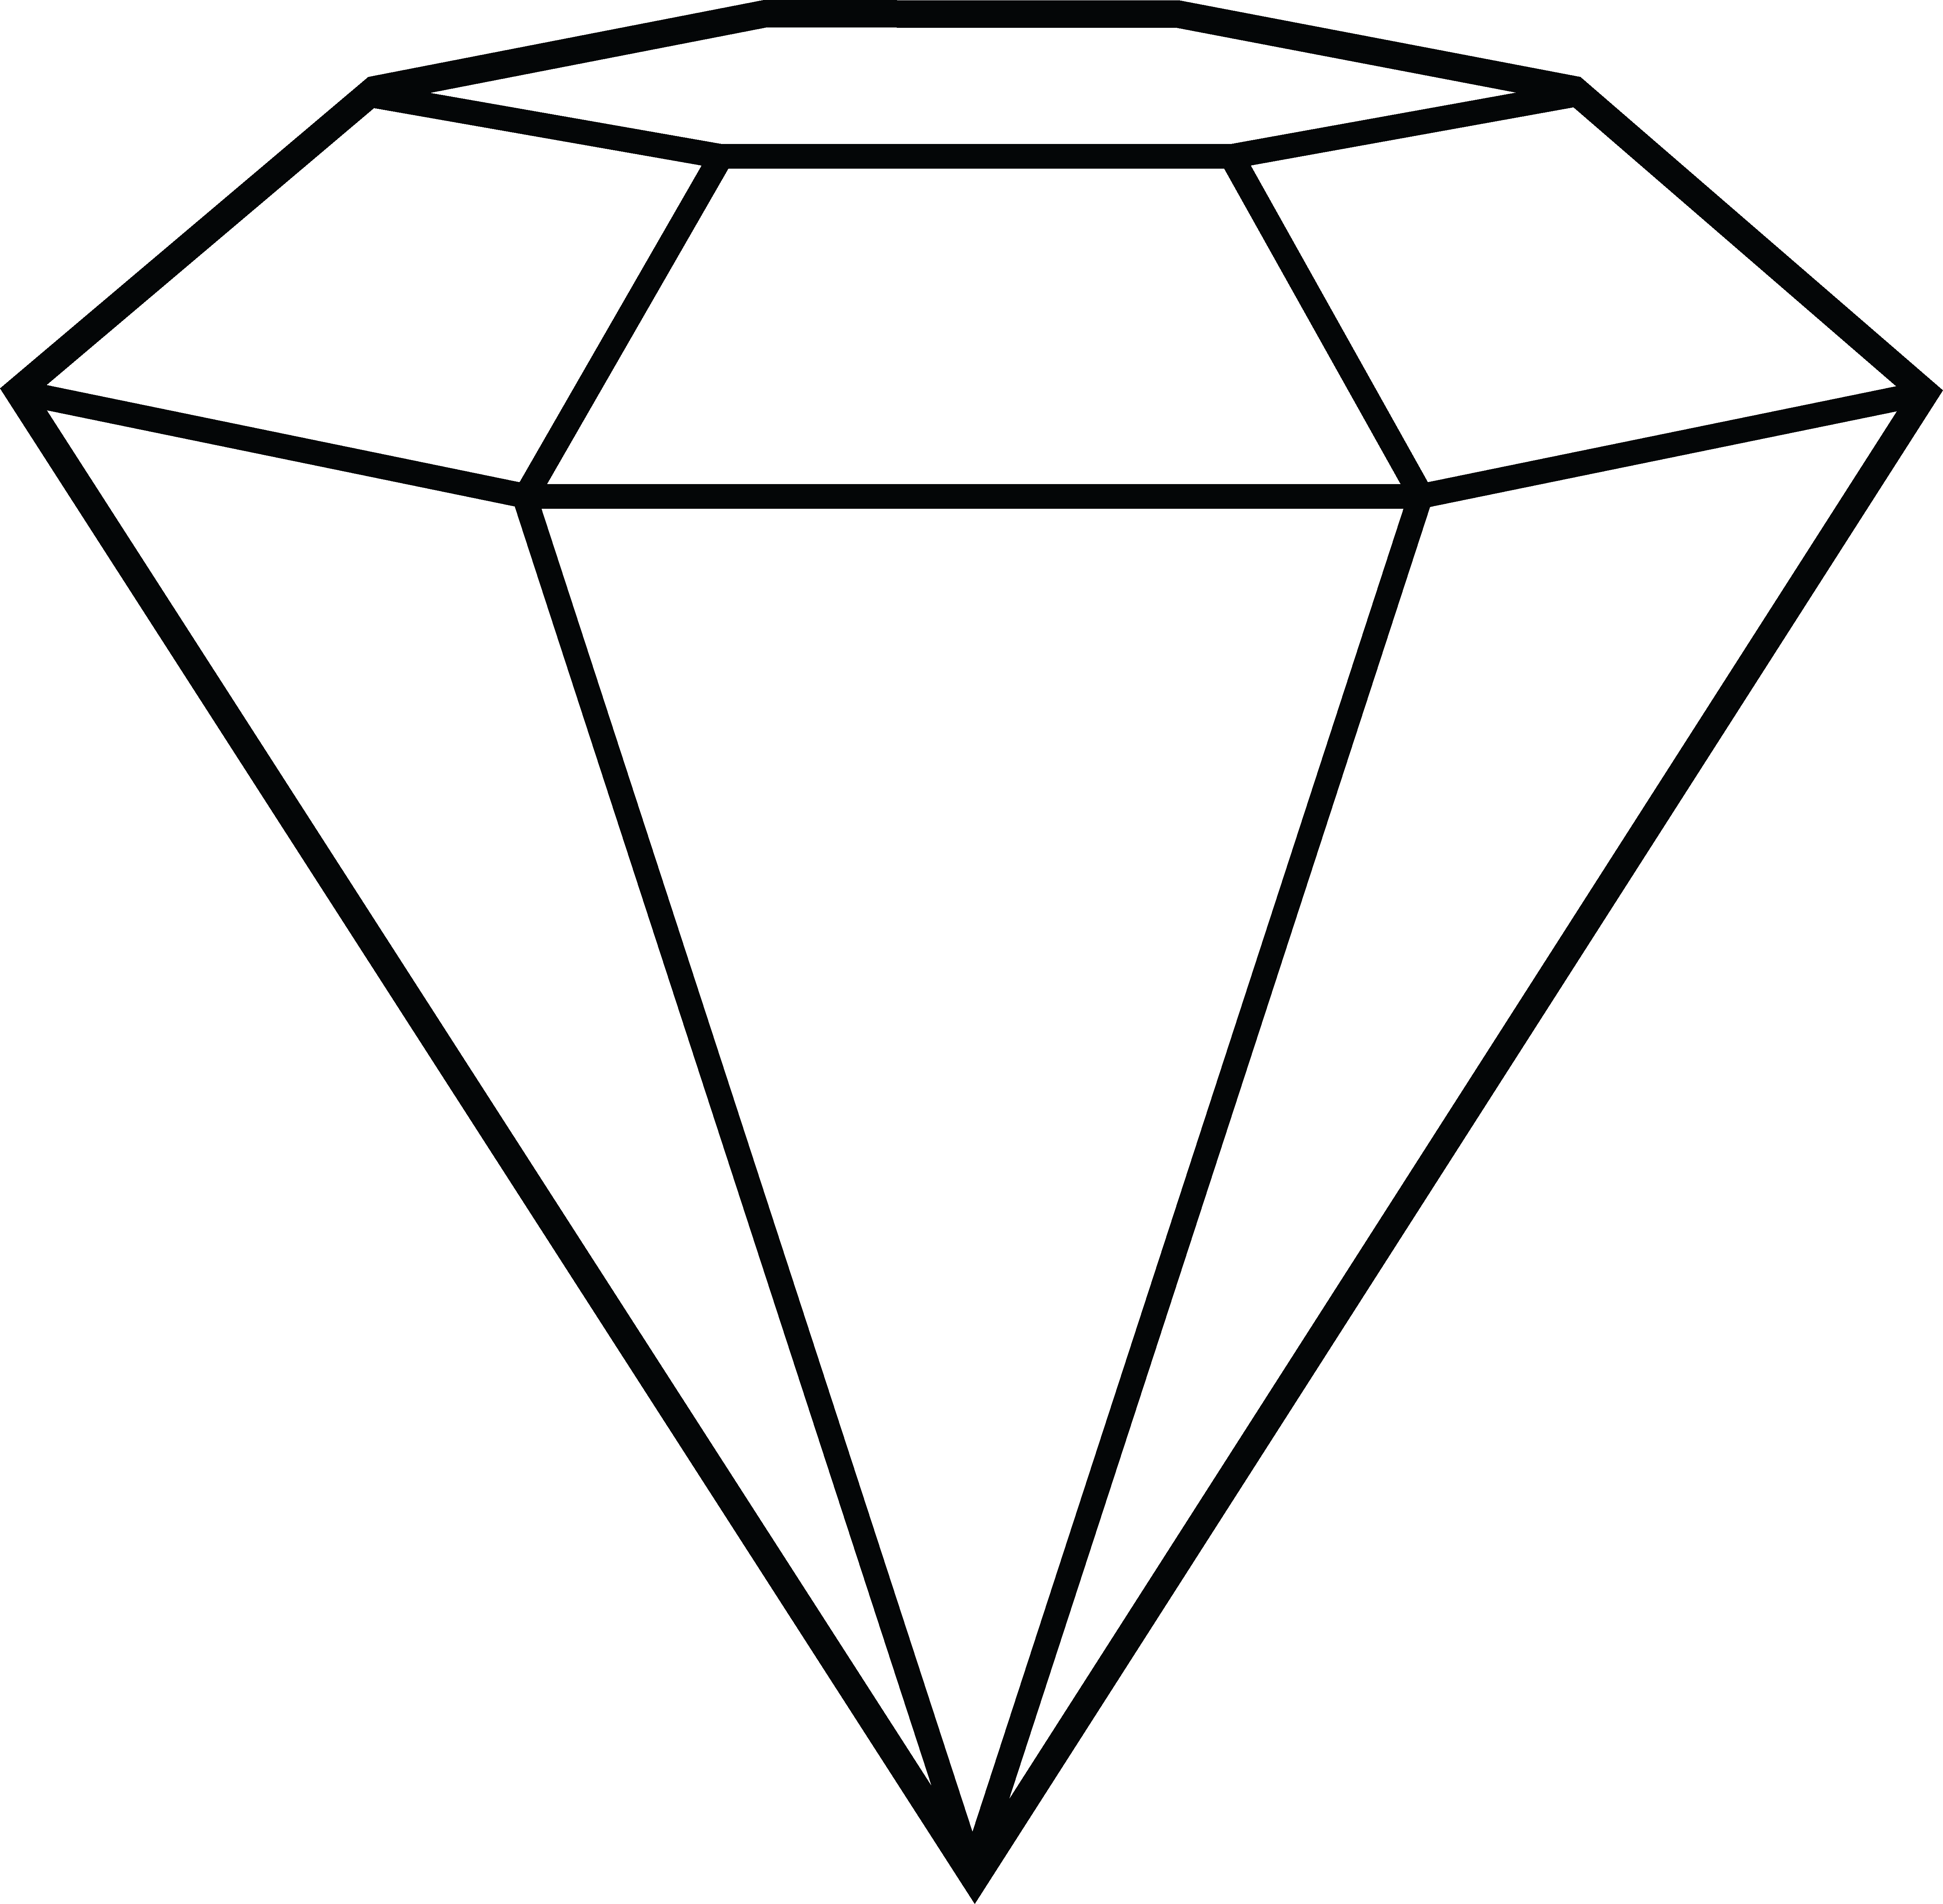 Diamond clip art 6